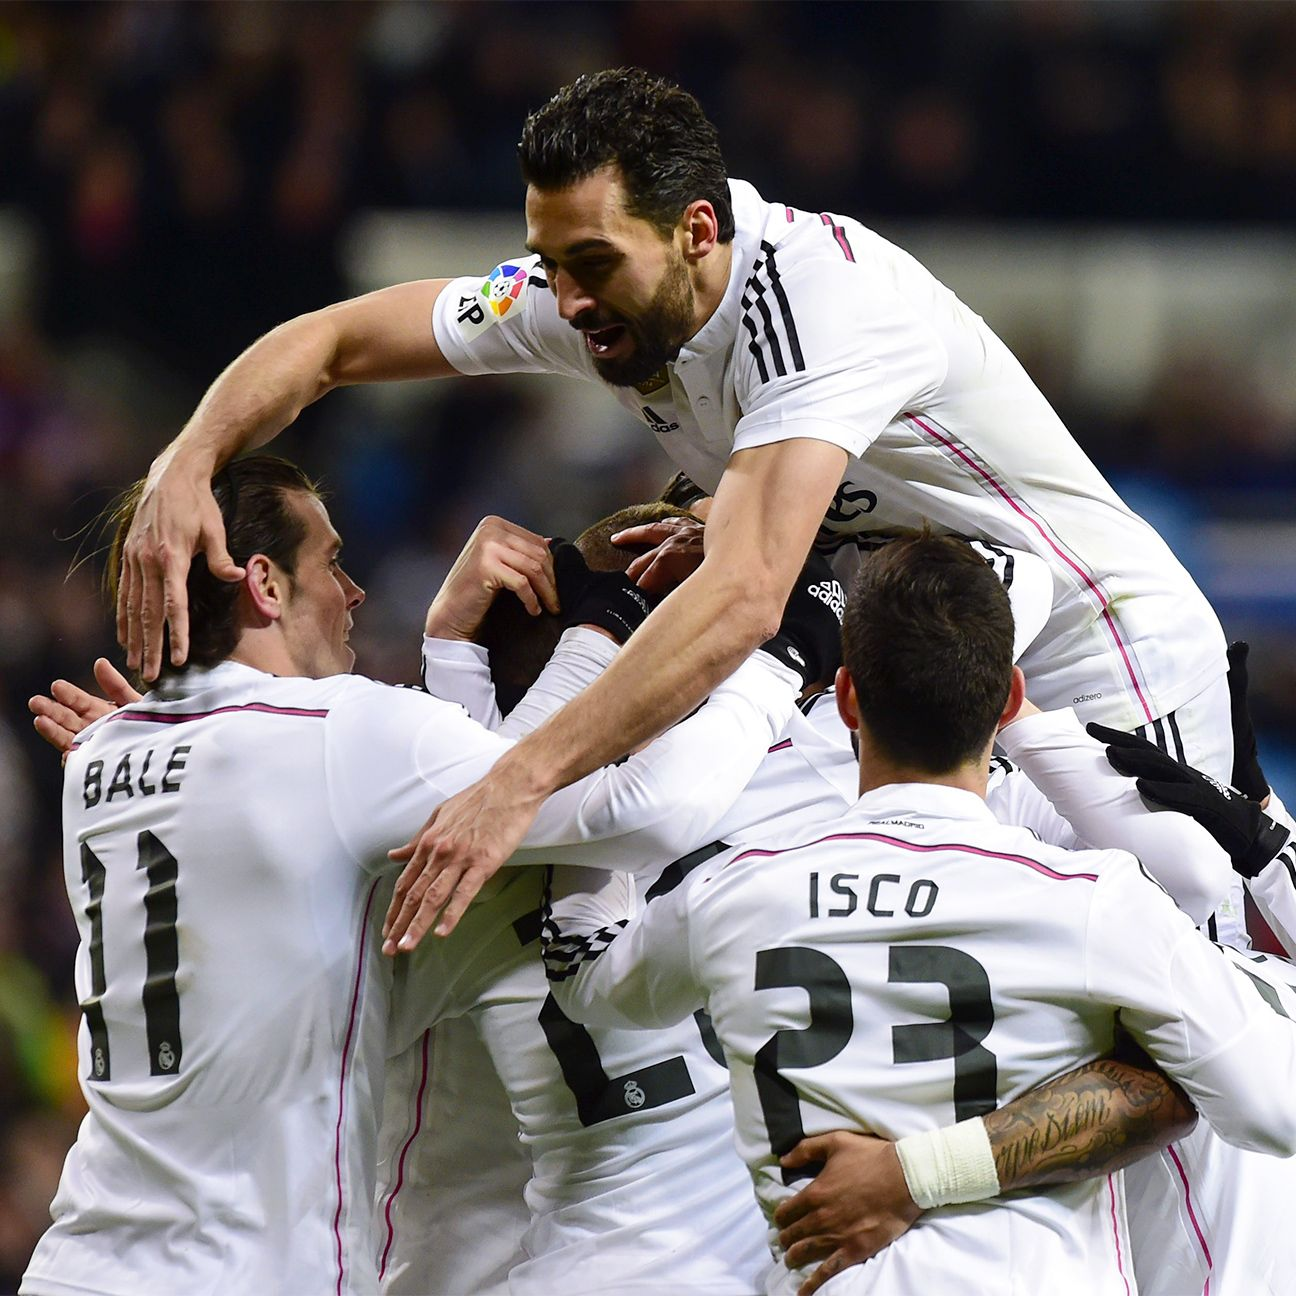 Real Madrid now hold a four point lead over Barcelona and a seven point edge over Atletico in the La Liga table.